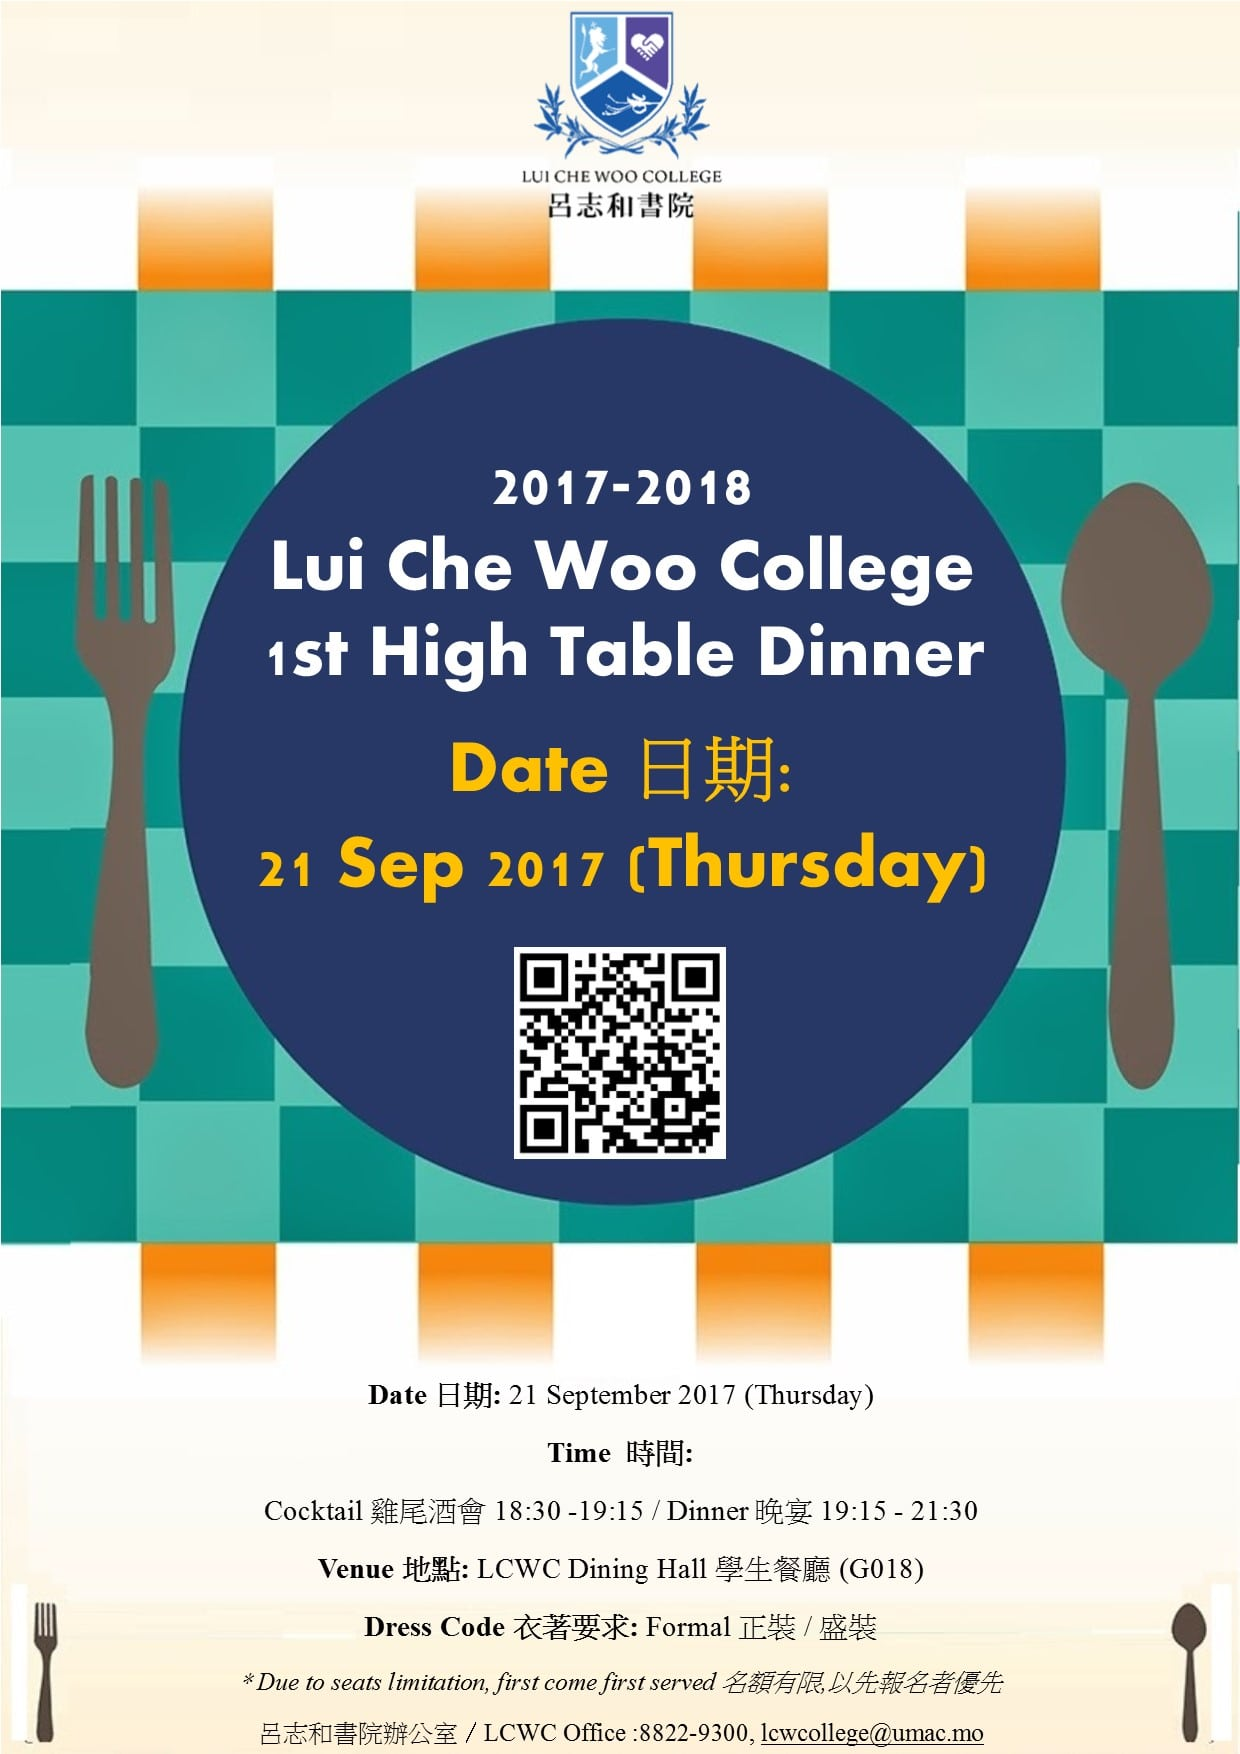 AY2017-18 LCWC 1st High Table Dinner and Pre-drink Reception